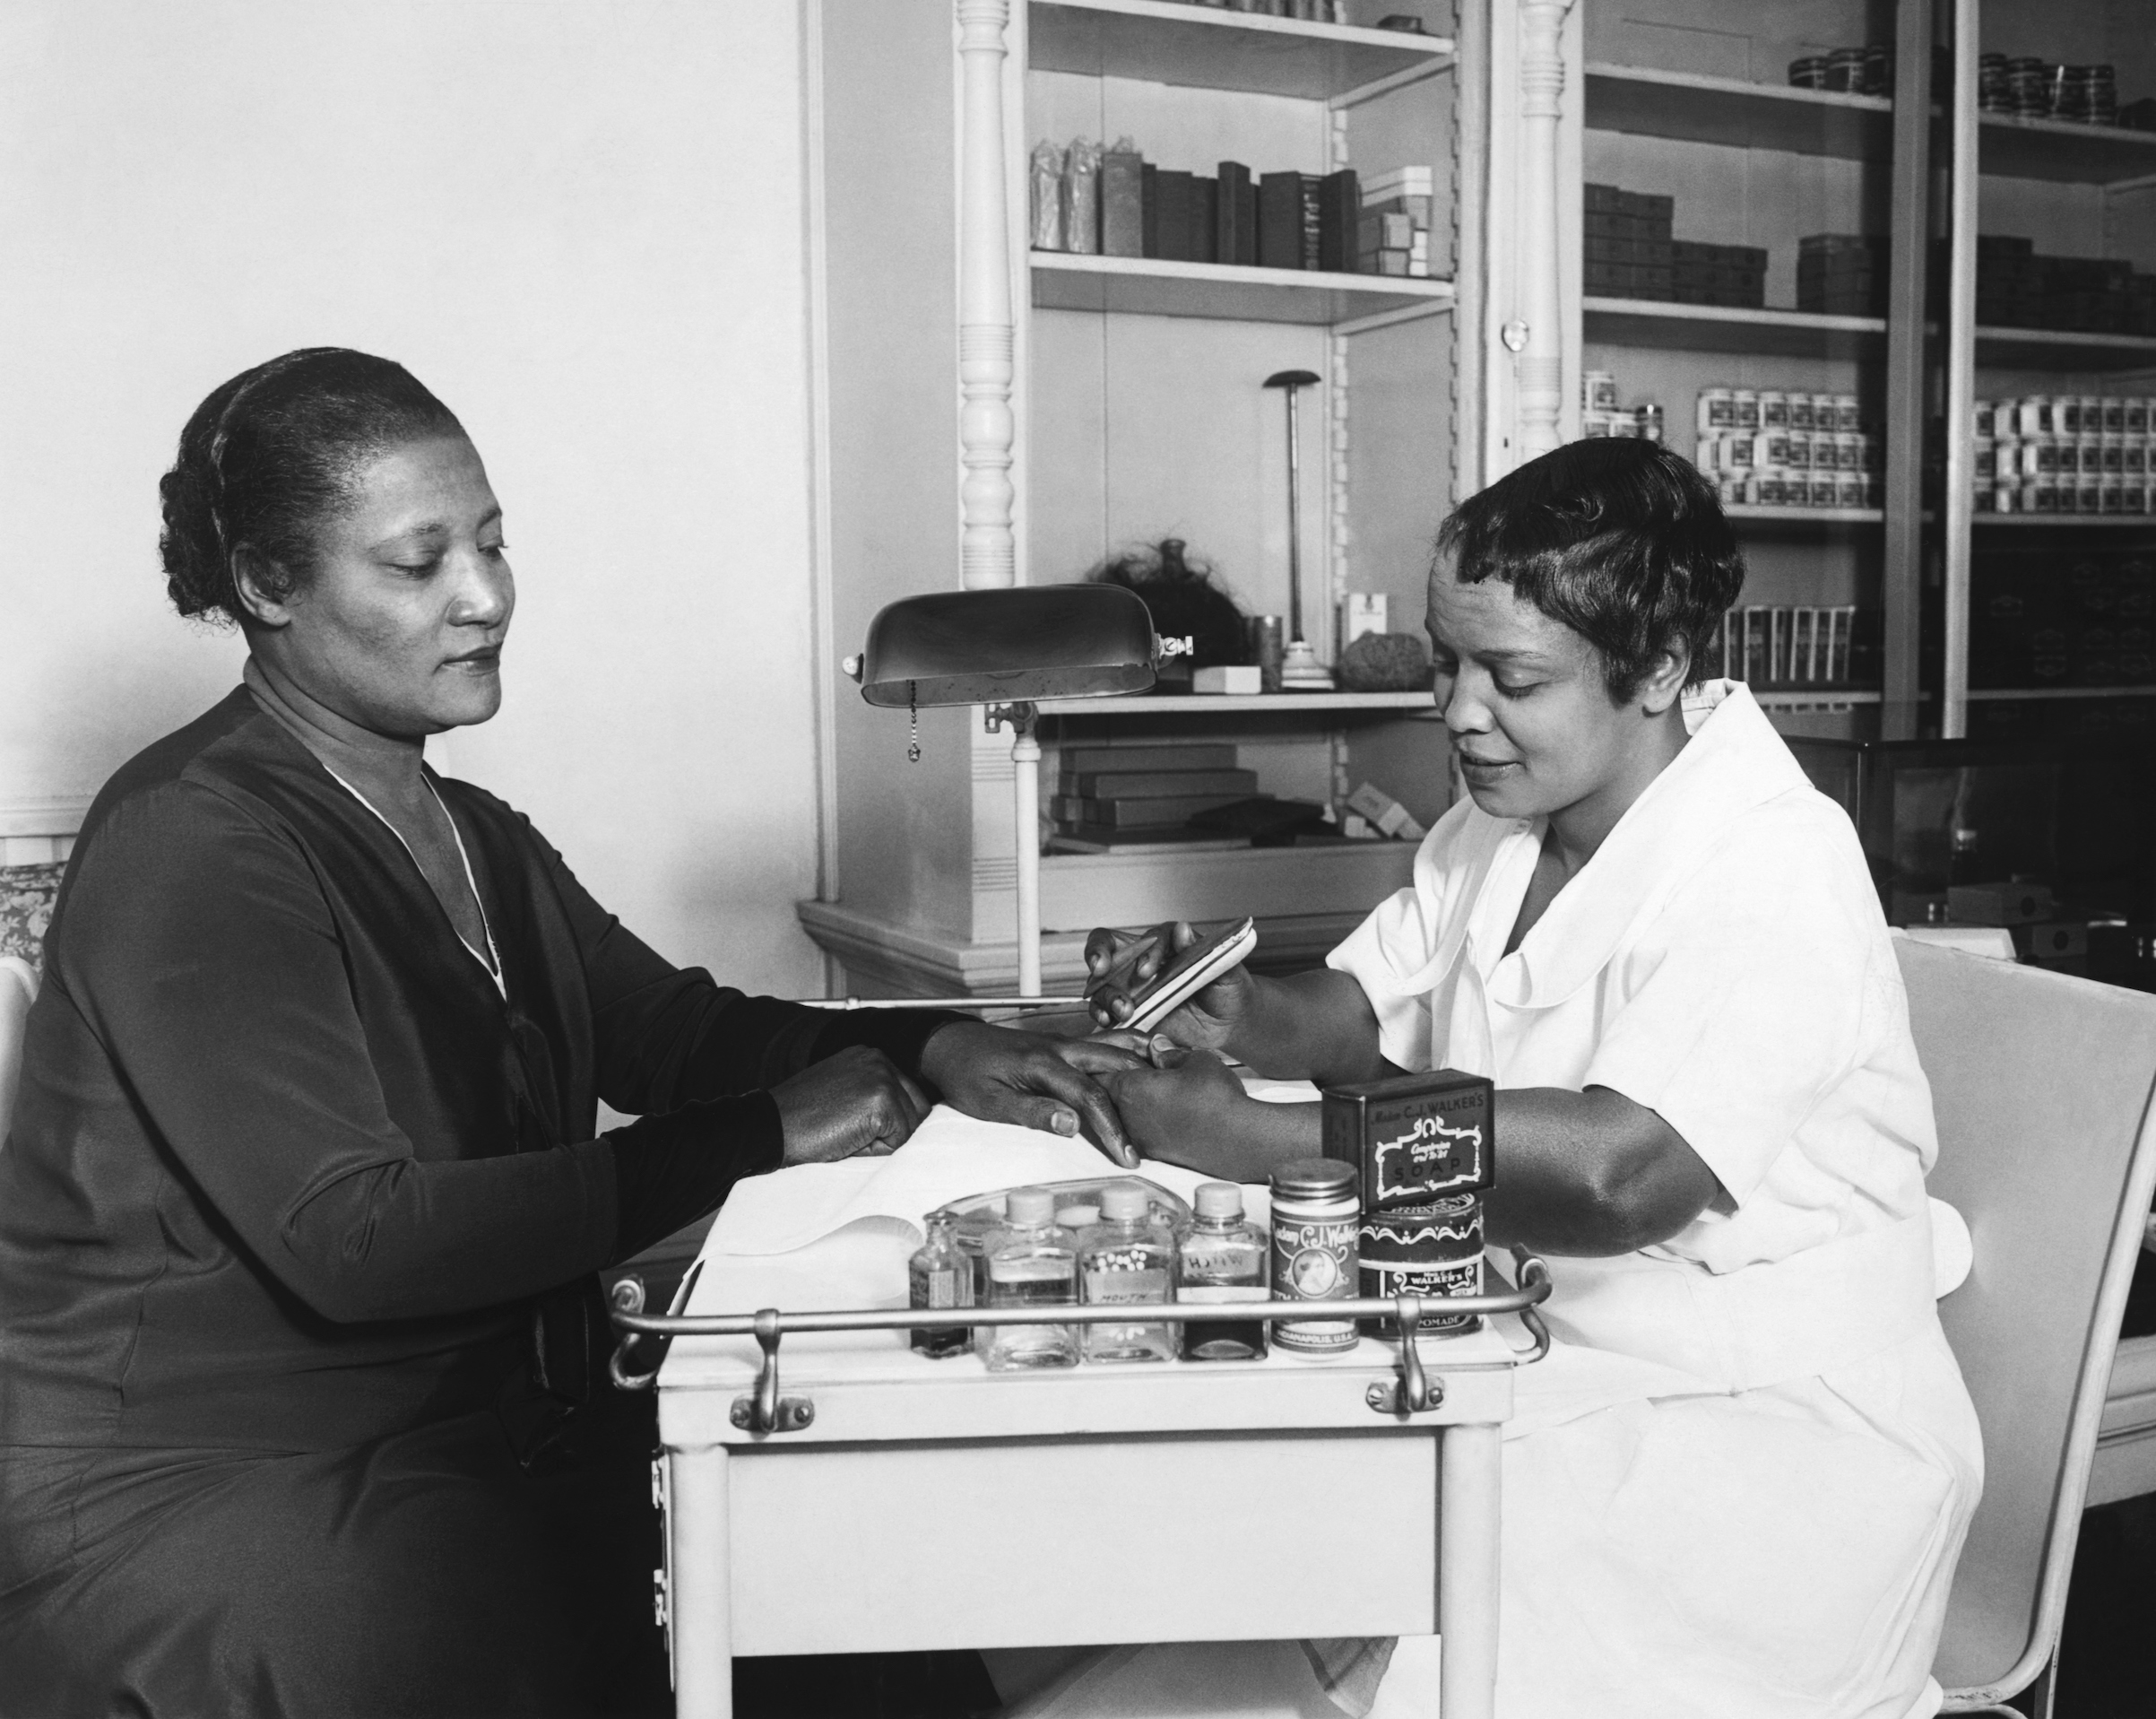 A'Lelia Walker, daughter of Madame C. J. Walker, gets a manicure at one of her mother's beauty shops, circa 1920.